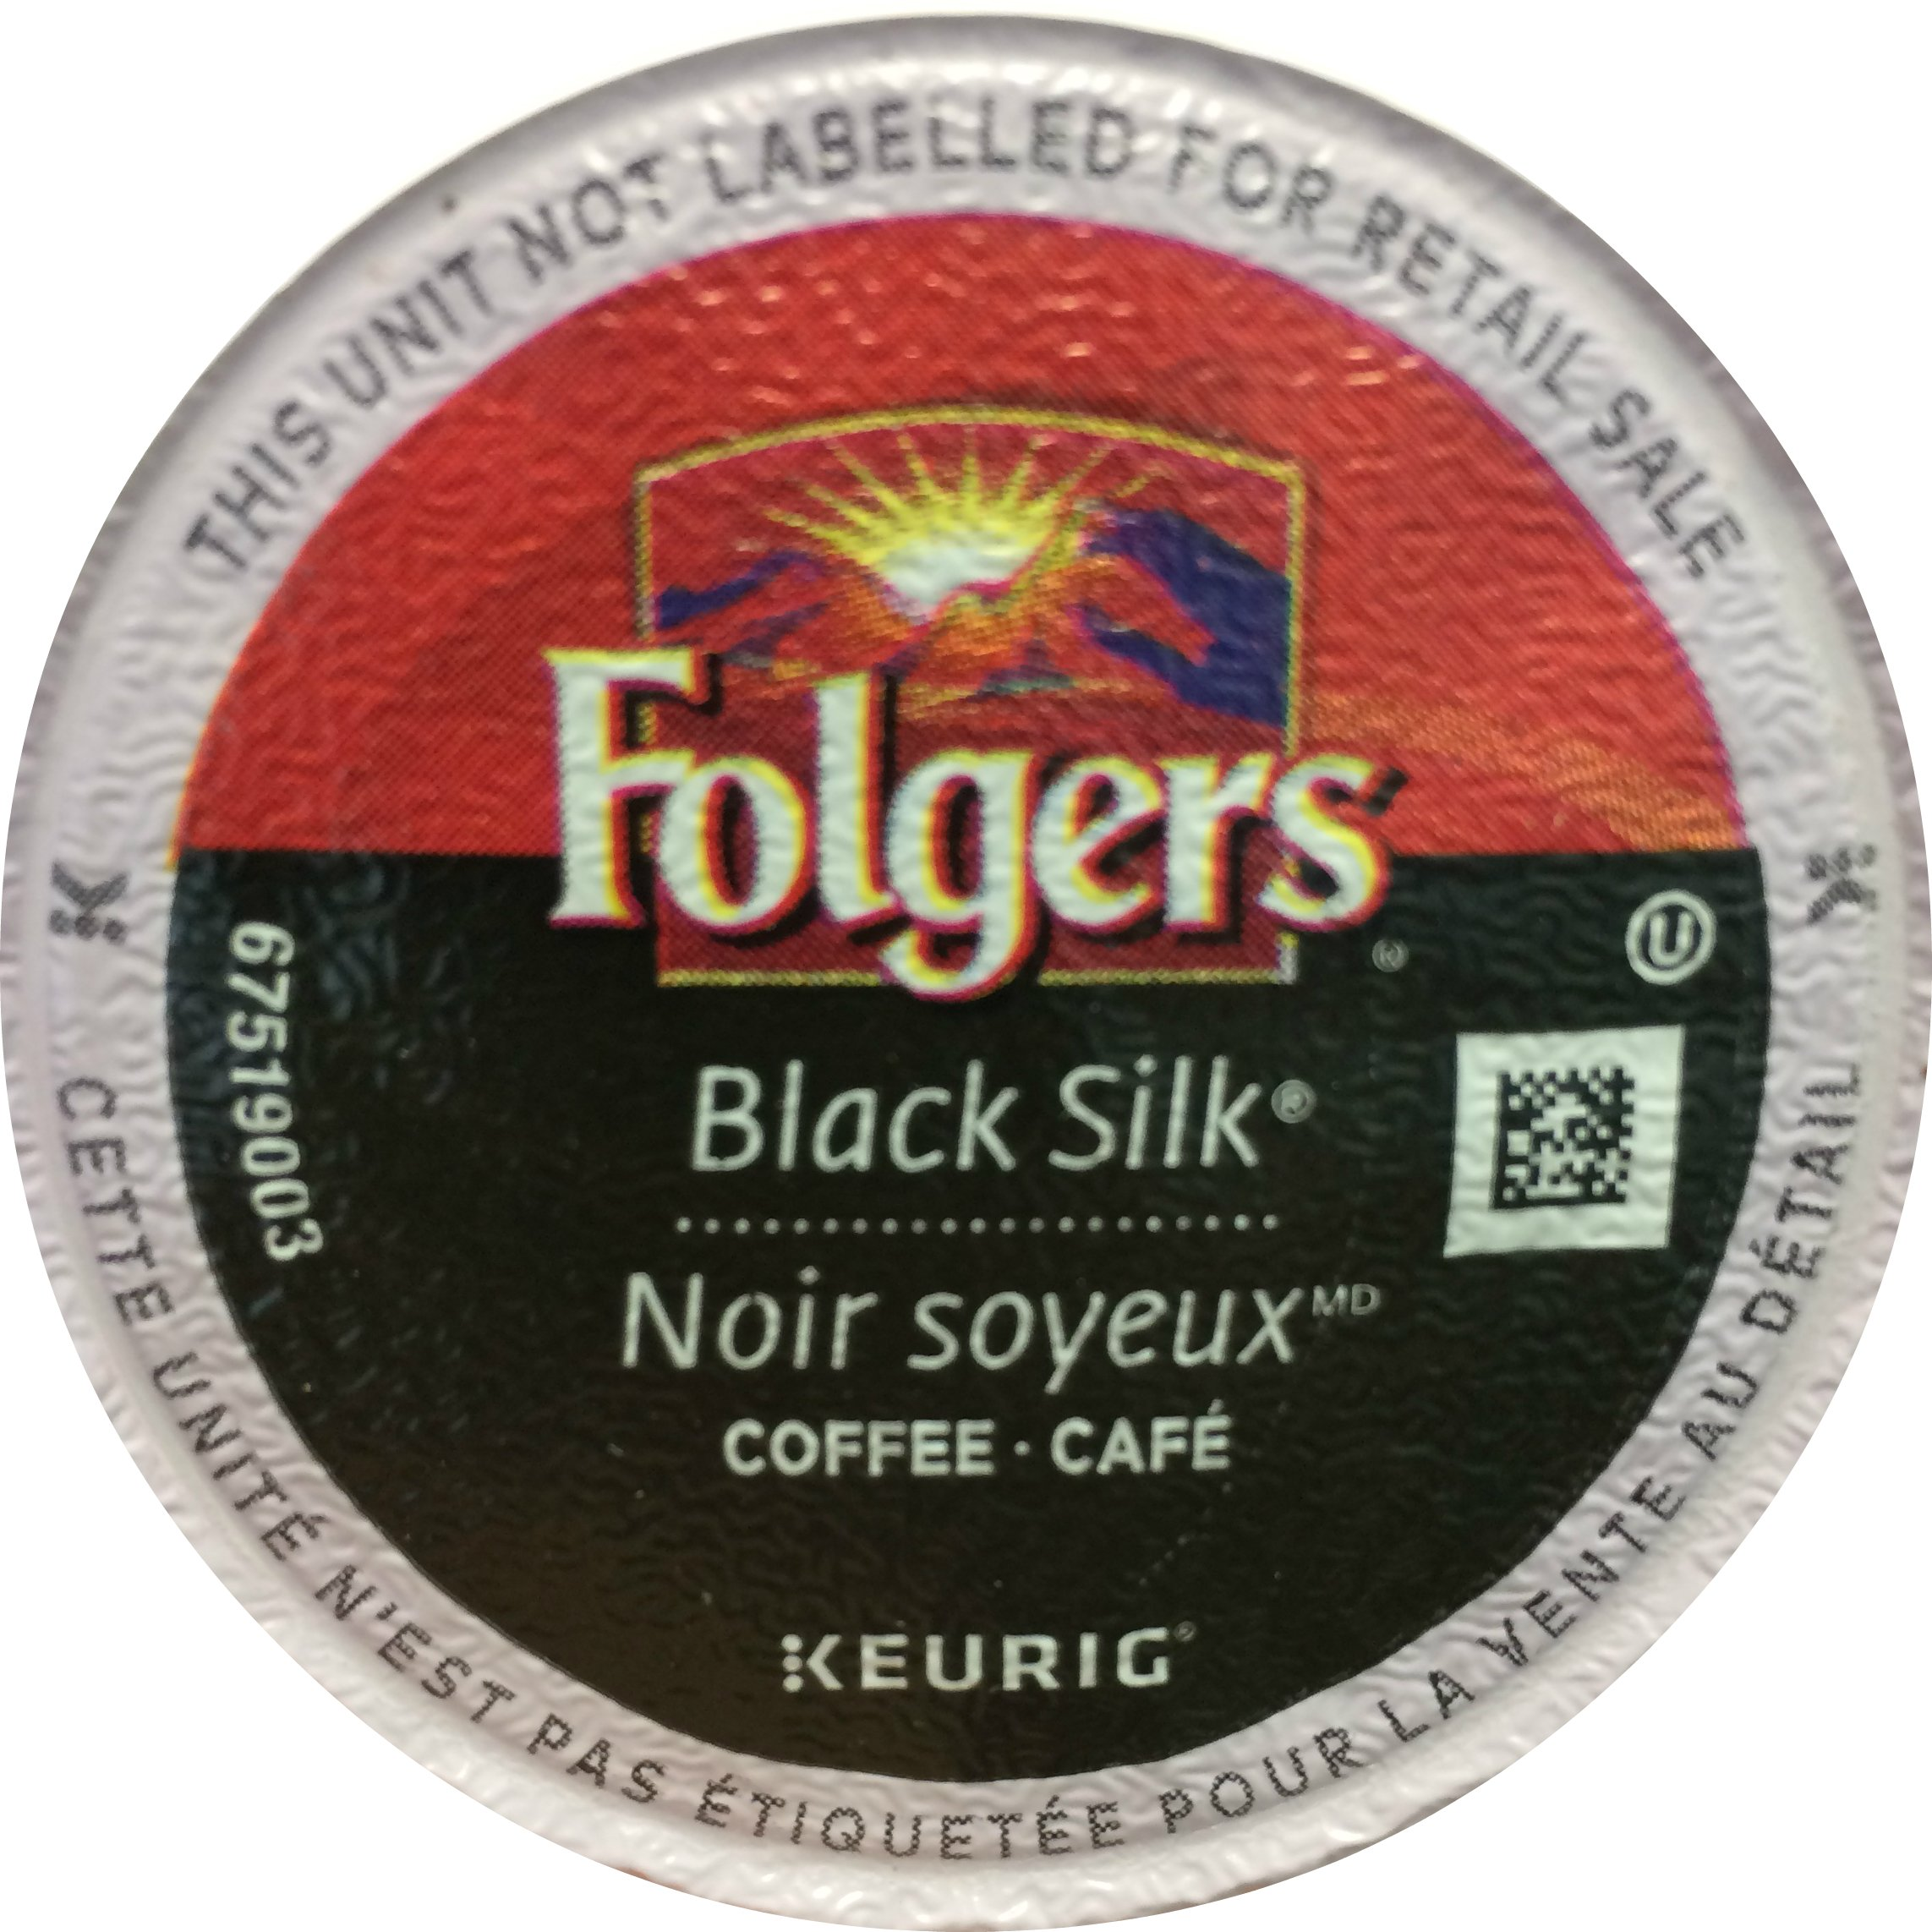 Folgers Coffee, Black Silk, K-Cups for Keurig Brewing Systems (120 count) by Folgers